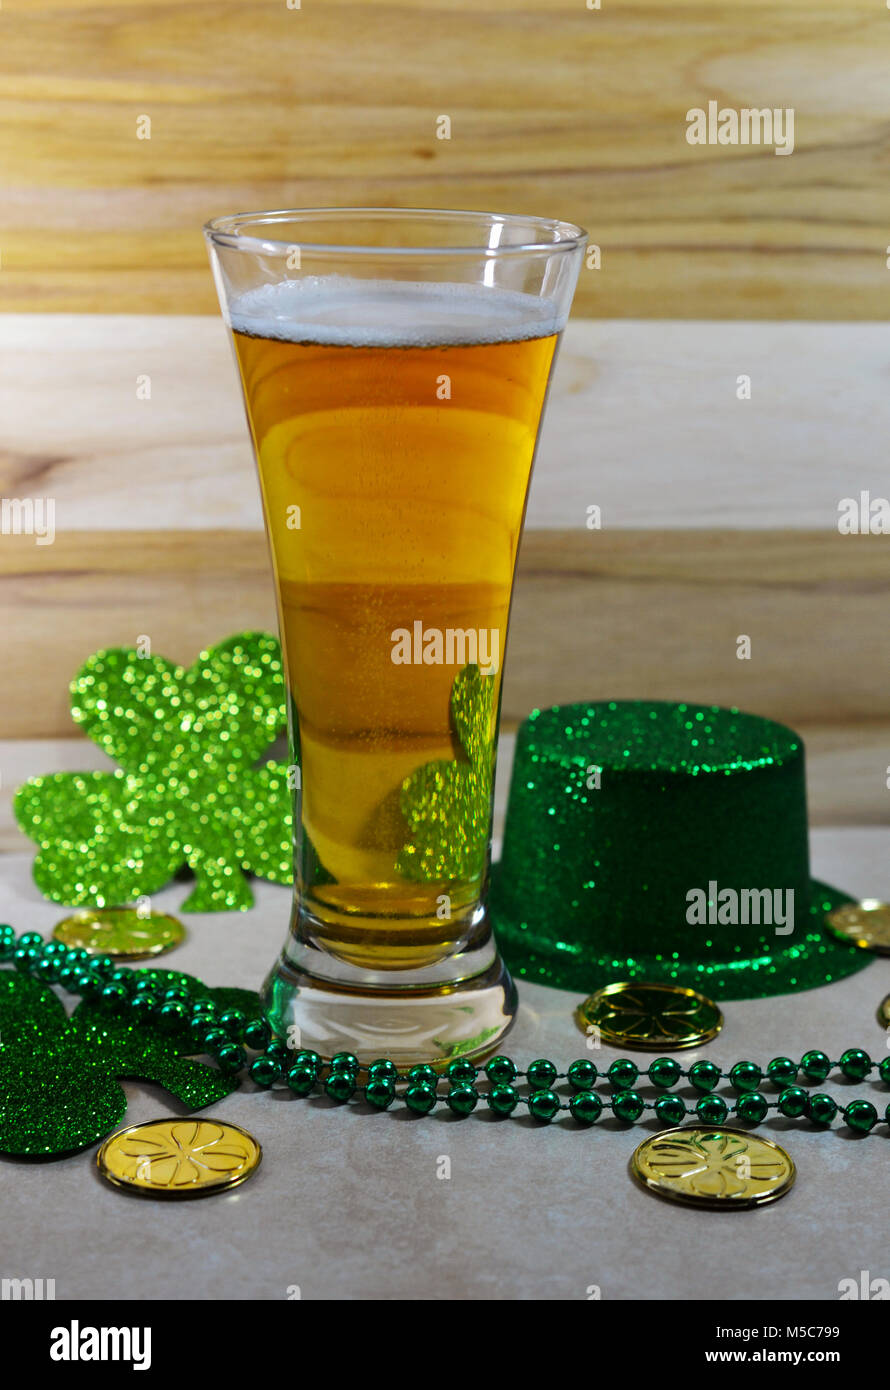 St Patricks Day beer glass filled with beer, thin layer of foam, green top hat, green clover, green stringed beads - Stock Image